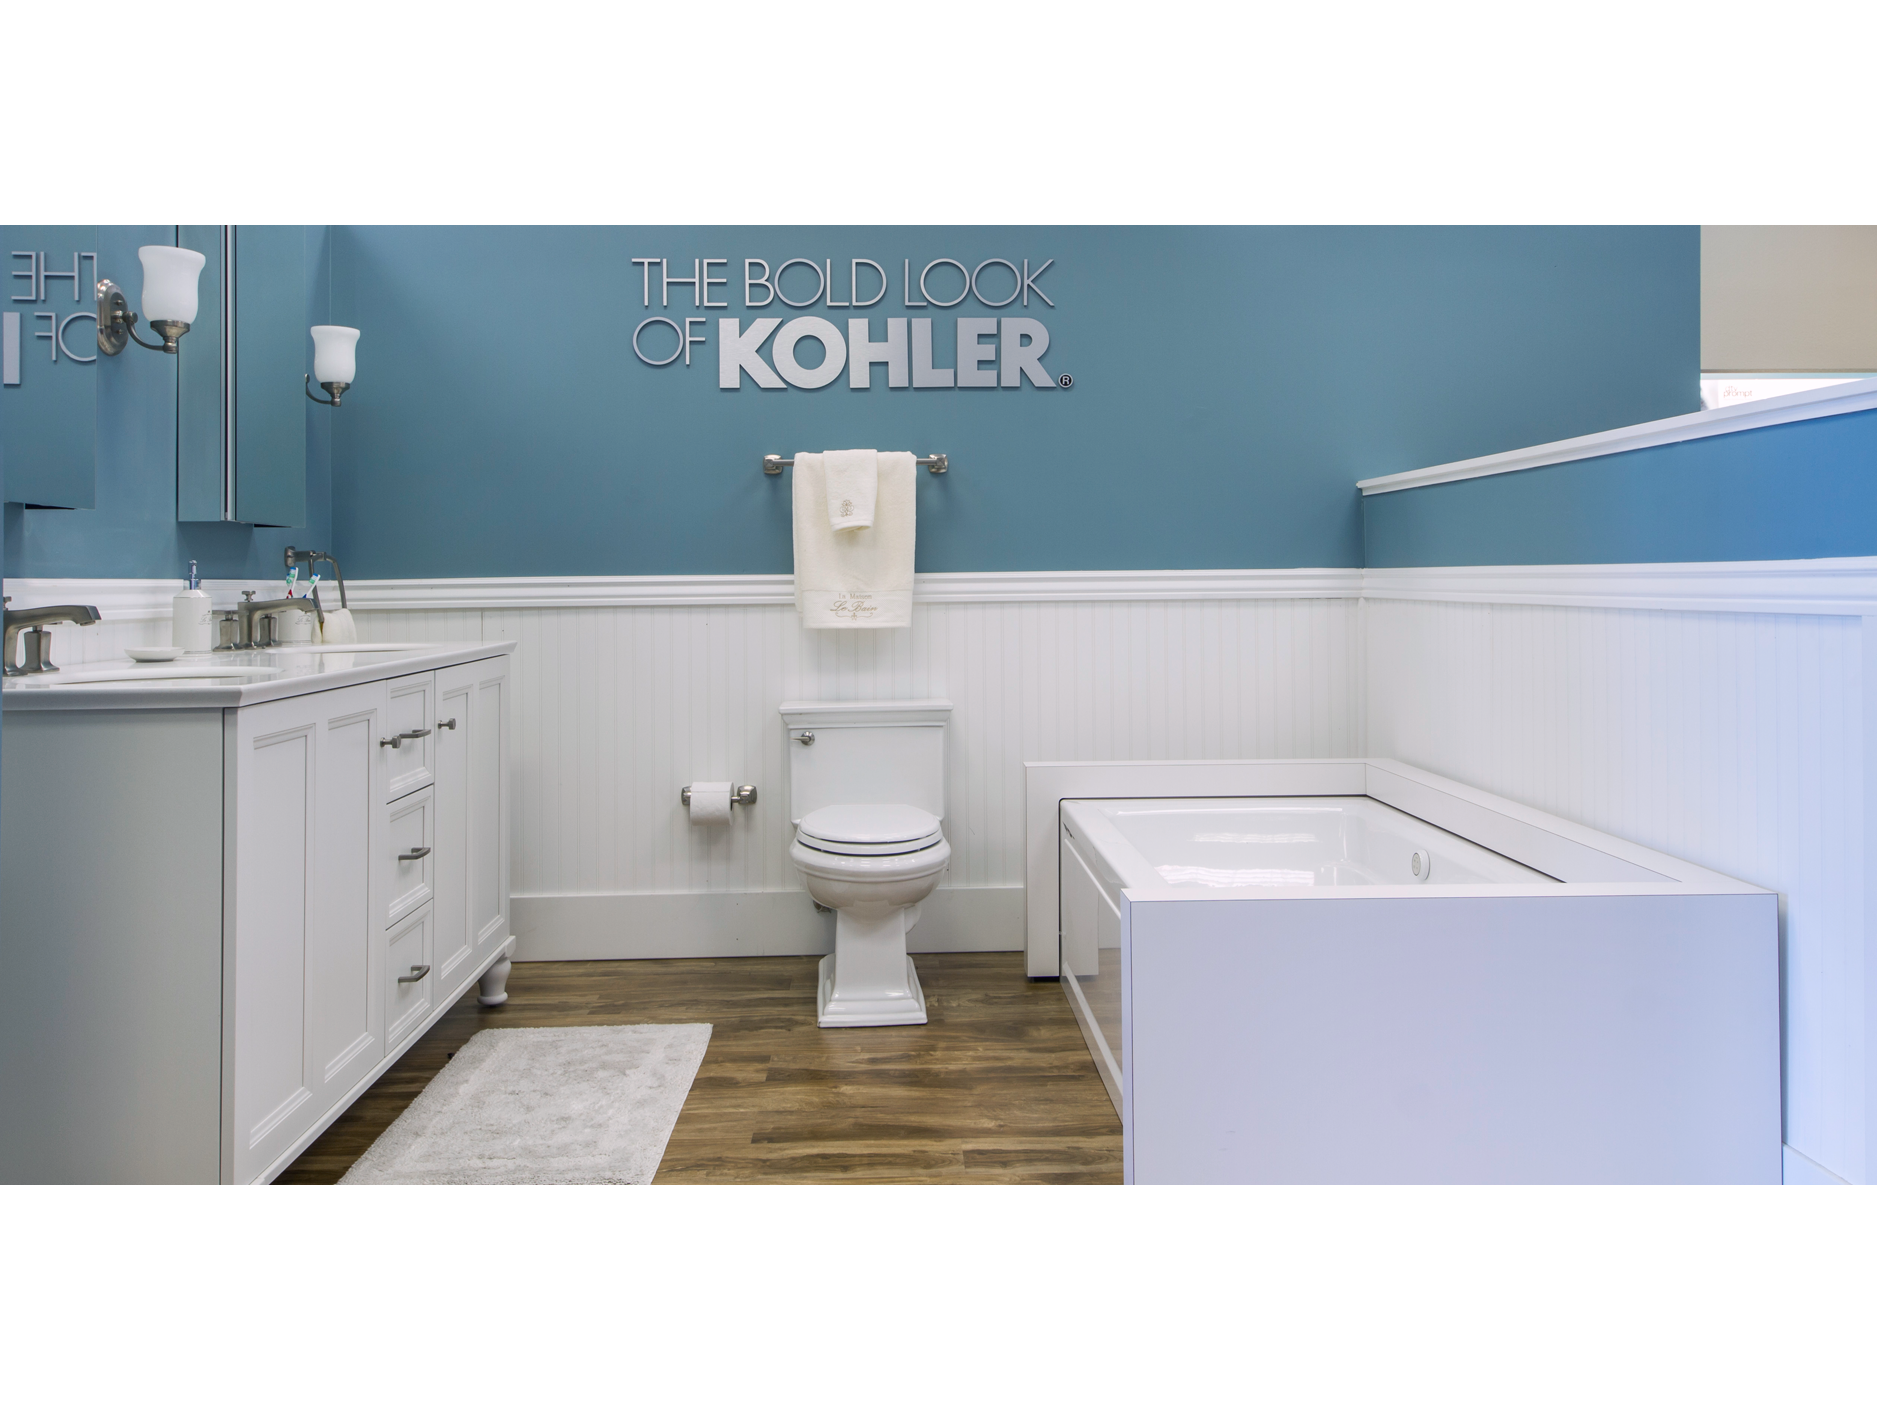 KOHLER Kitchen & Bathroom Products at The Plumbery in Dublin, CA